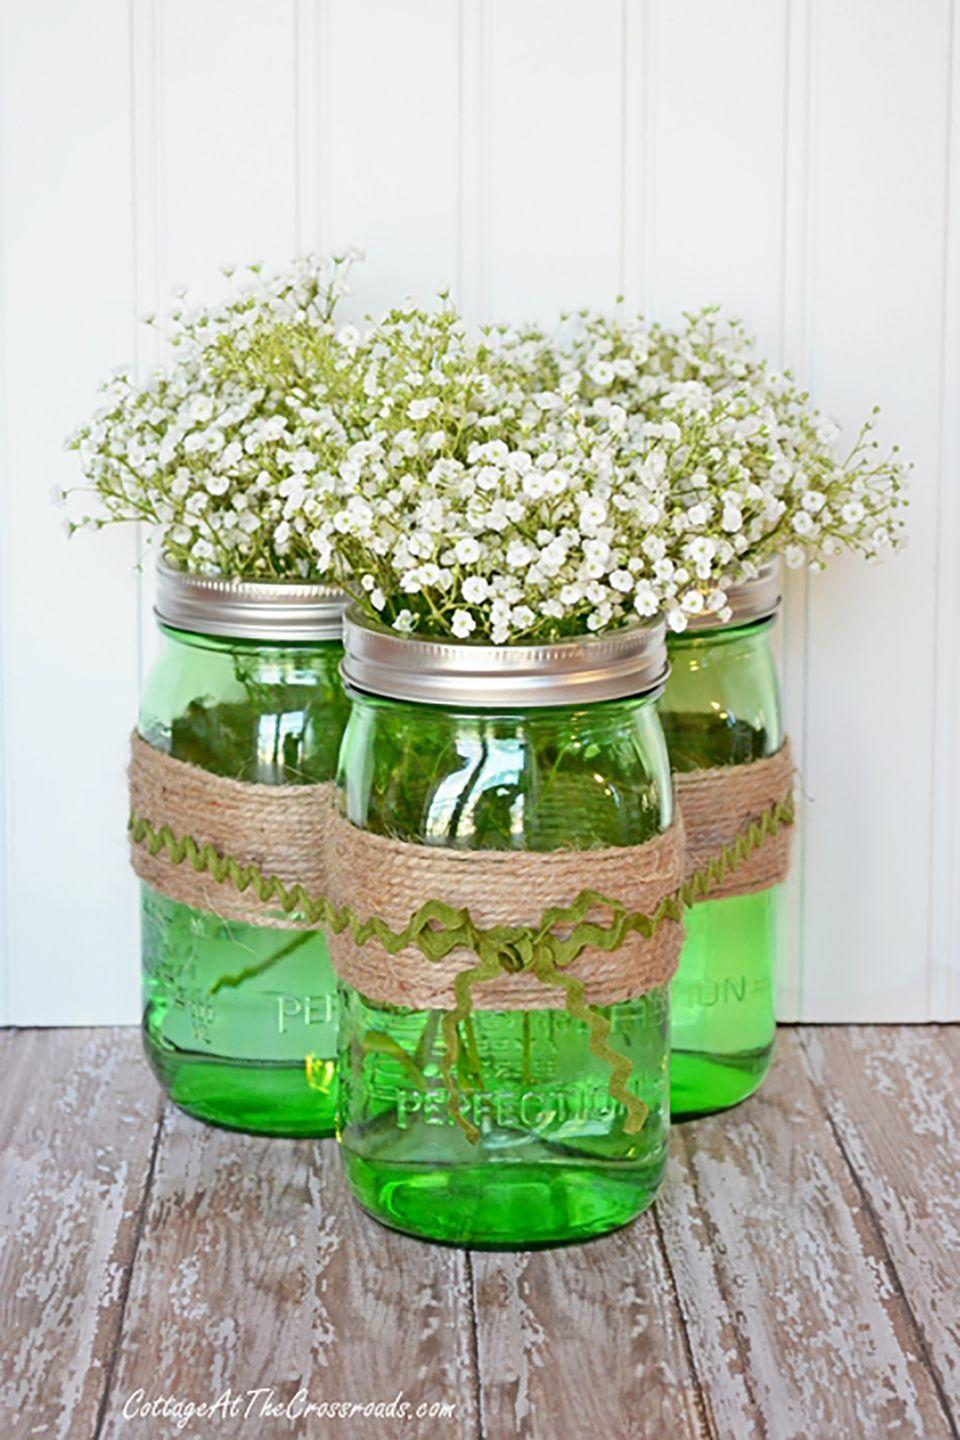 """<p>The hue makes them festive enough for St. Patrick's Day, but these jars are so pretty you'll want to leave them out all spring!</p><p><strong>Get the tutorial at <a href=""""http://cottageatthecrossroads.com/easy-spring-centerpiece-with-green-ball-jars/"""" rel=""""nofollow noopener"""" target=""""_blank"""" data-ylk=""""slk:Cottage at the Crossroads"""" class=""""link rapid-noclick-resp"""">Cottage at the Crossroads</a>. </strong></p><p><a class=""""link rapid-noclick-resp"""" href=""""https://www.amazon.com/Ball-1440069110-Bands-Mouth-quart/dp/B00NZVTVAQ/ref=sr_1_4?tag=syn-yahoo-20&ascsubtag=%5Bartid%7C10050.g.4036%5Bsrc%7Cyahoo-us"""" rel=""""nofollow noopener"""" target=""""_blank"""" data-ylk=""""slk:SHOP GREEN MASON JARS"""">SHOP GREEN MASON JARS</a></p>"""